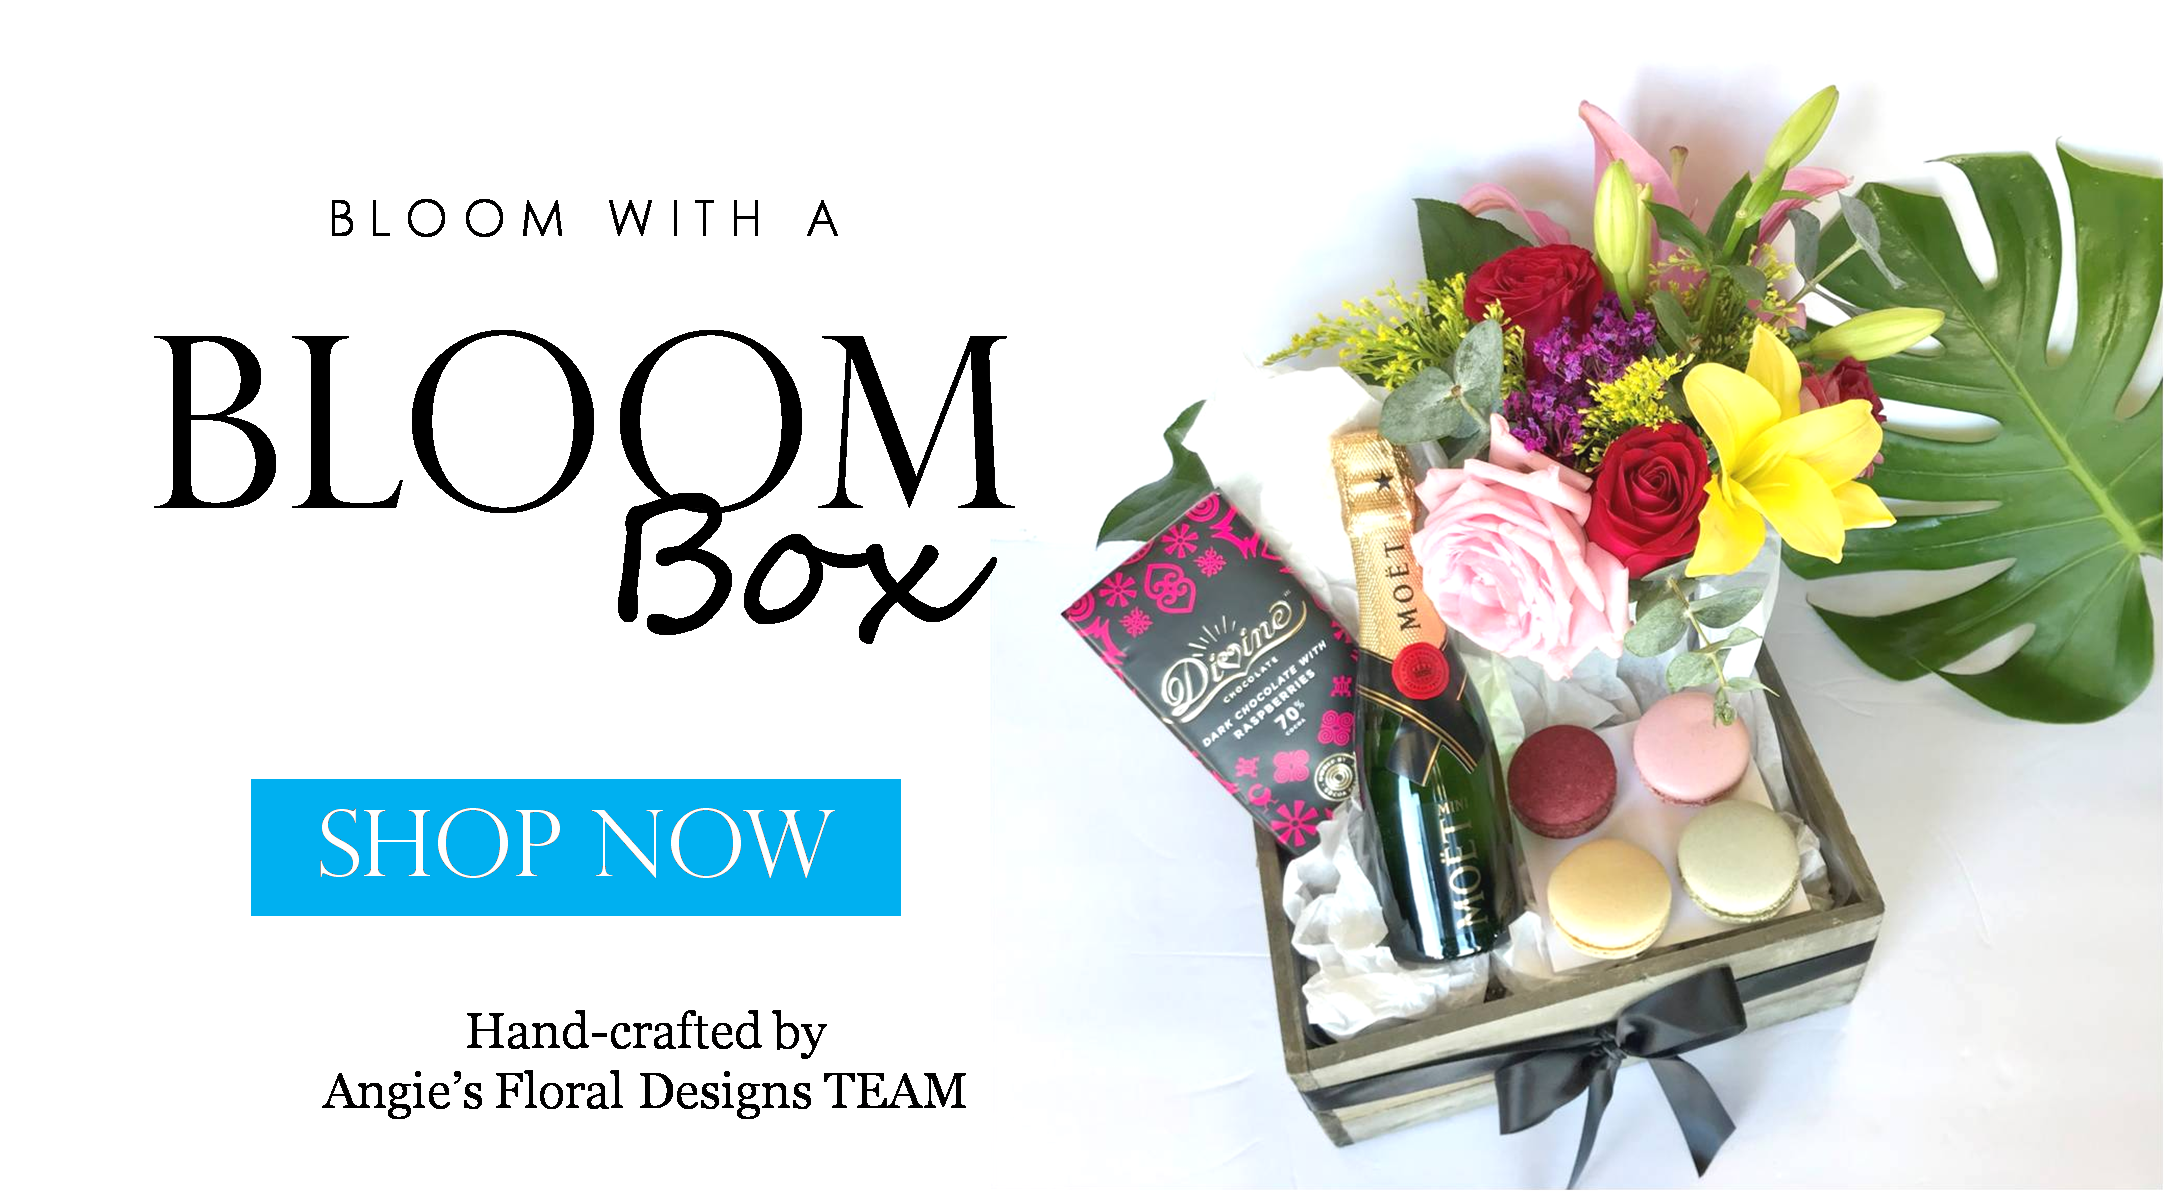 1we-make-el-paso-bloom-with-luxury-gift-rose-boxes-angies-floral-designs-angies-we-make-el-paso-el-paso-florist-bloom-box-bloomfloral-instagram-delivery-rose-delivery-el-paso-florist-angies-flower.png